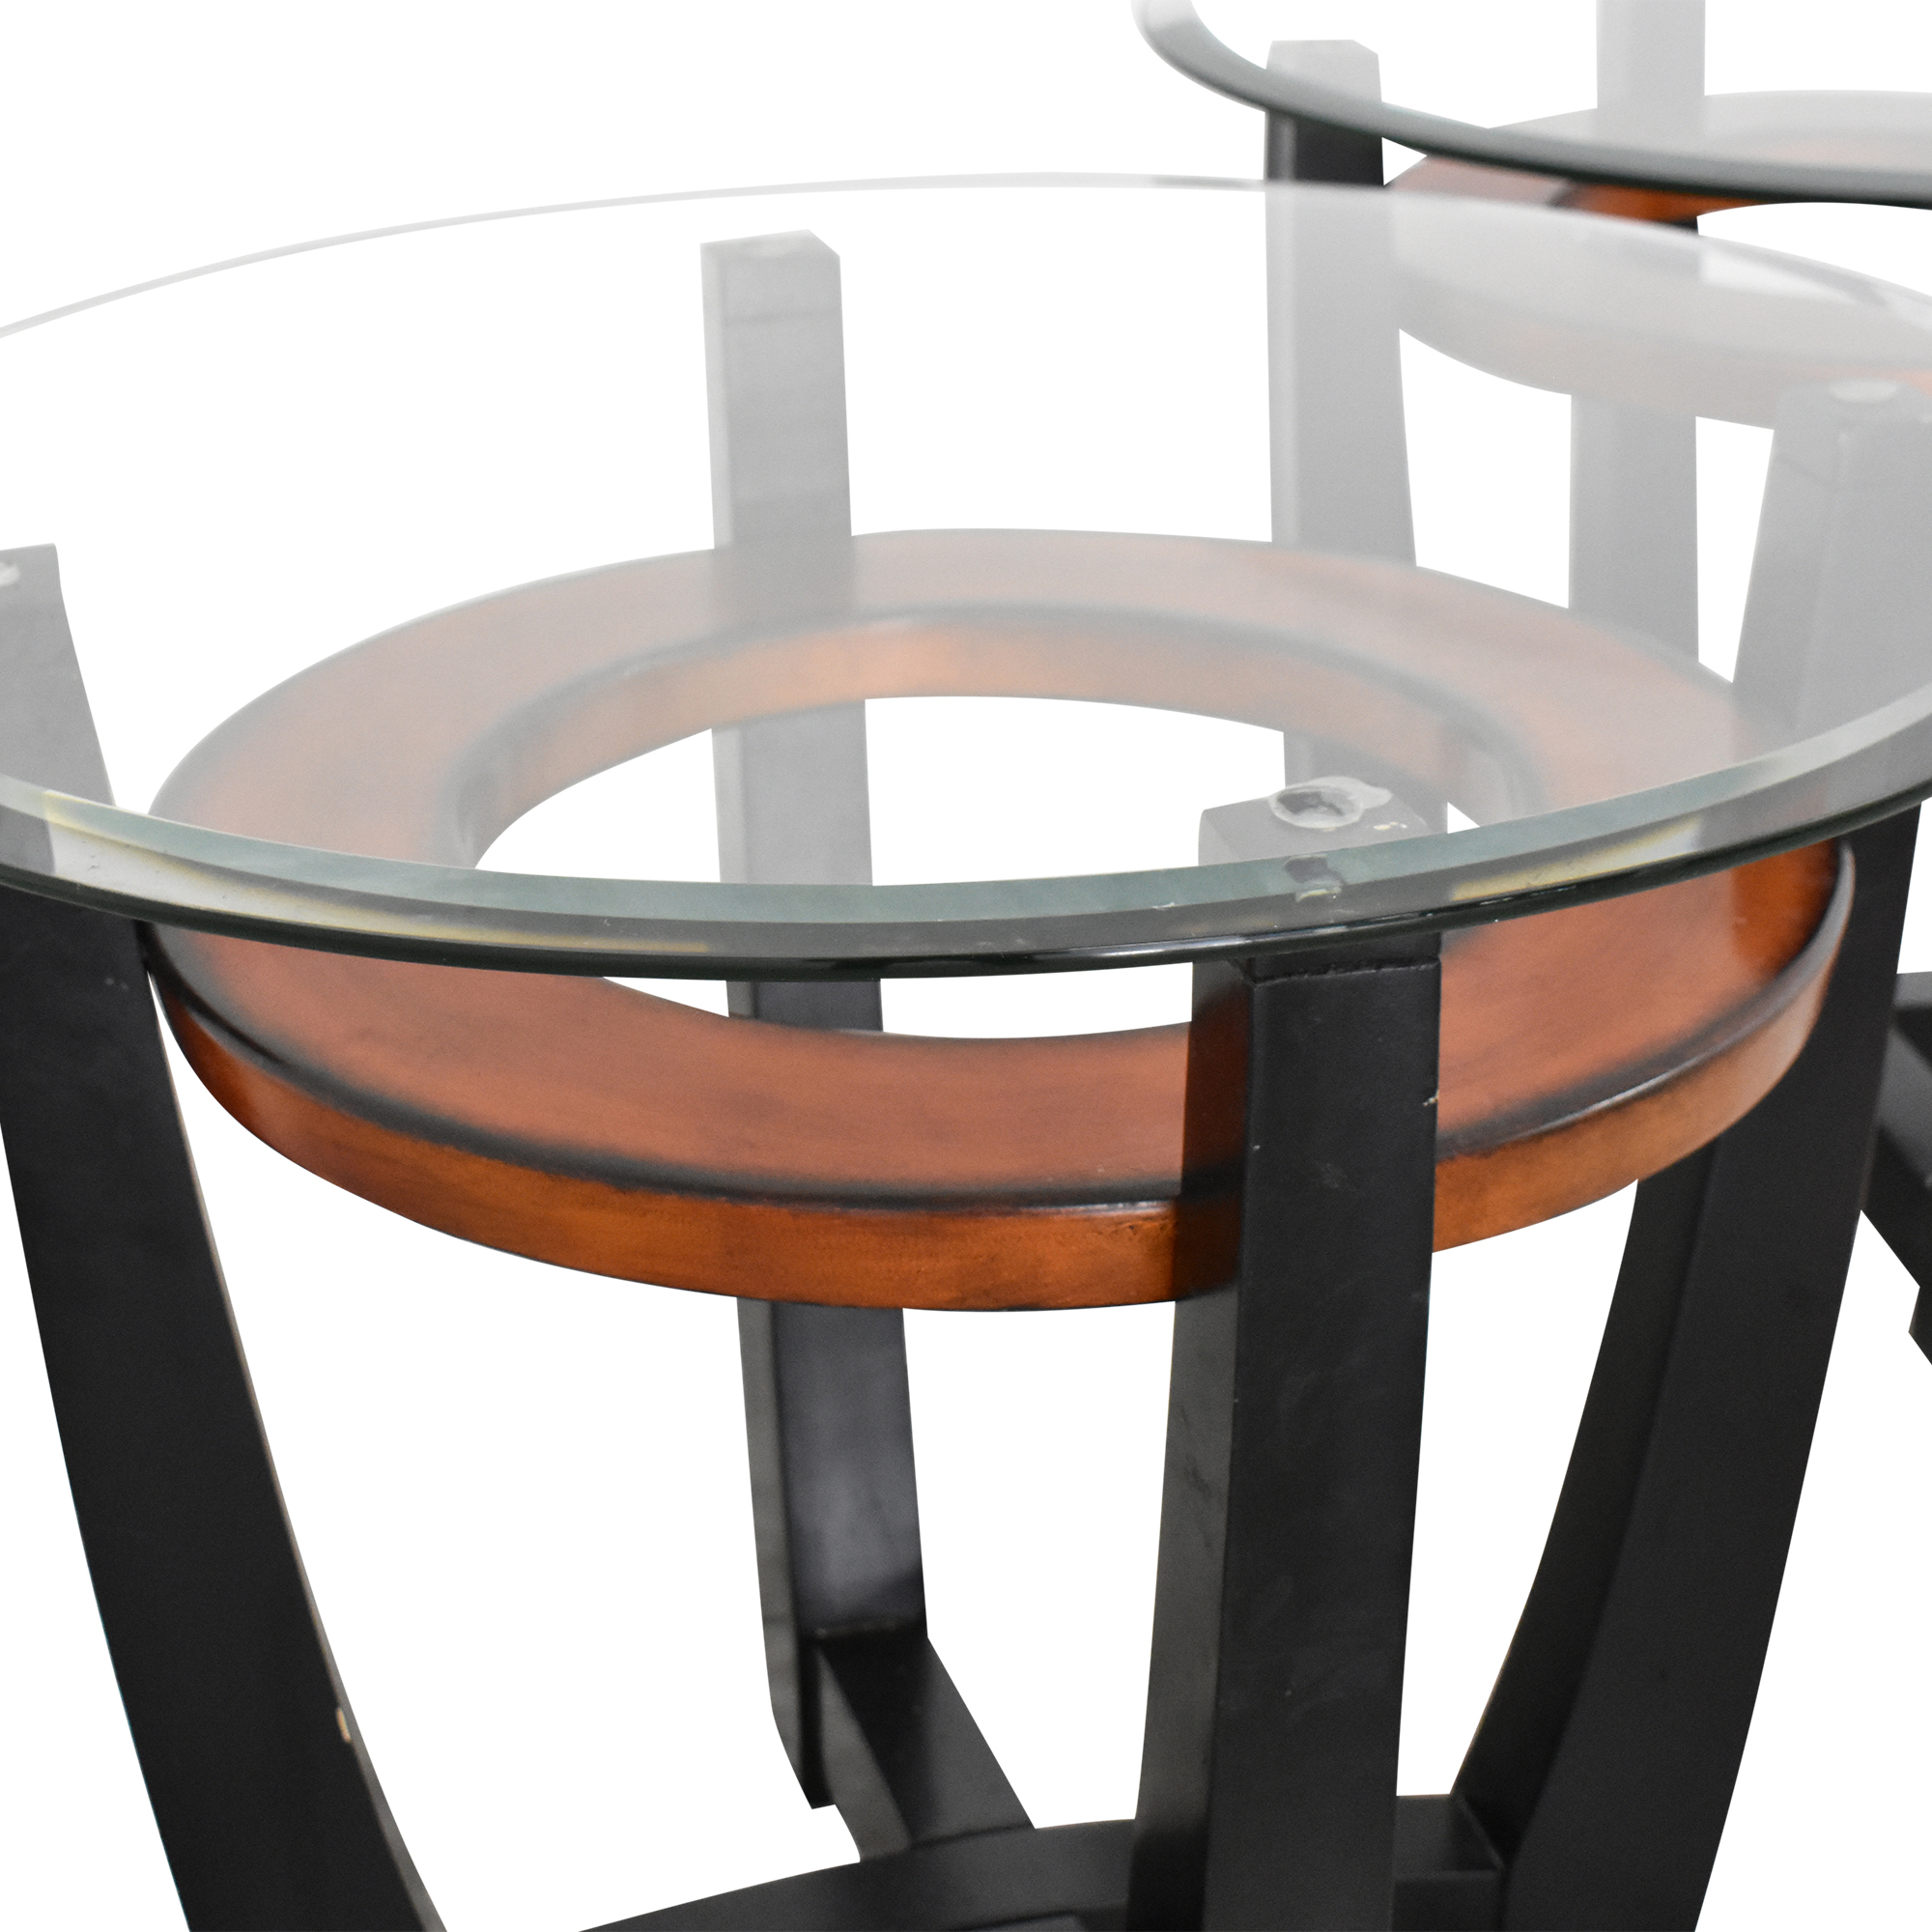 Macy's Macy's Elation Round End Tables price